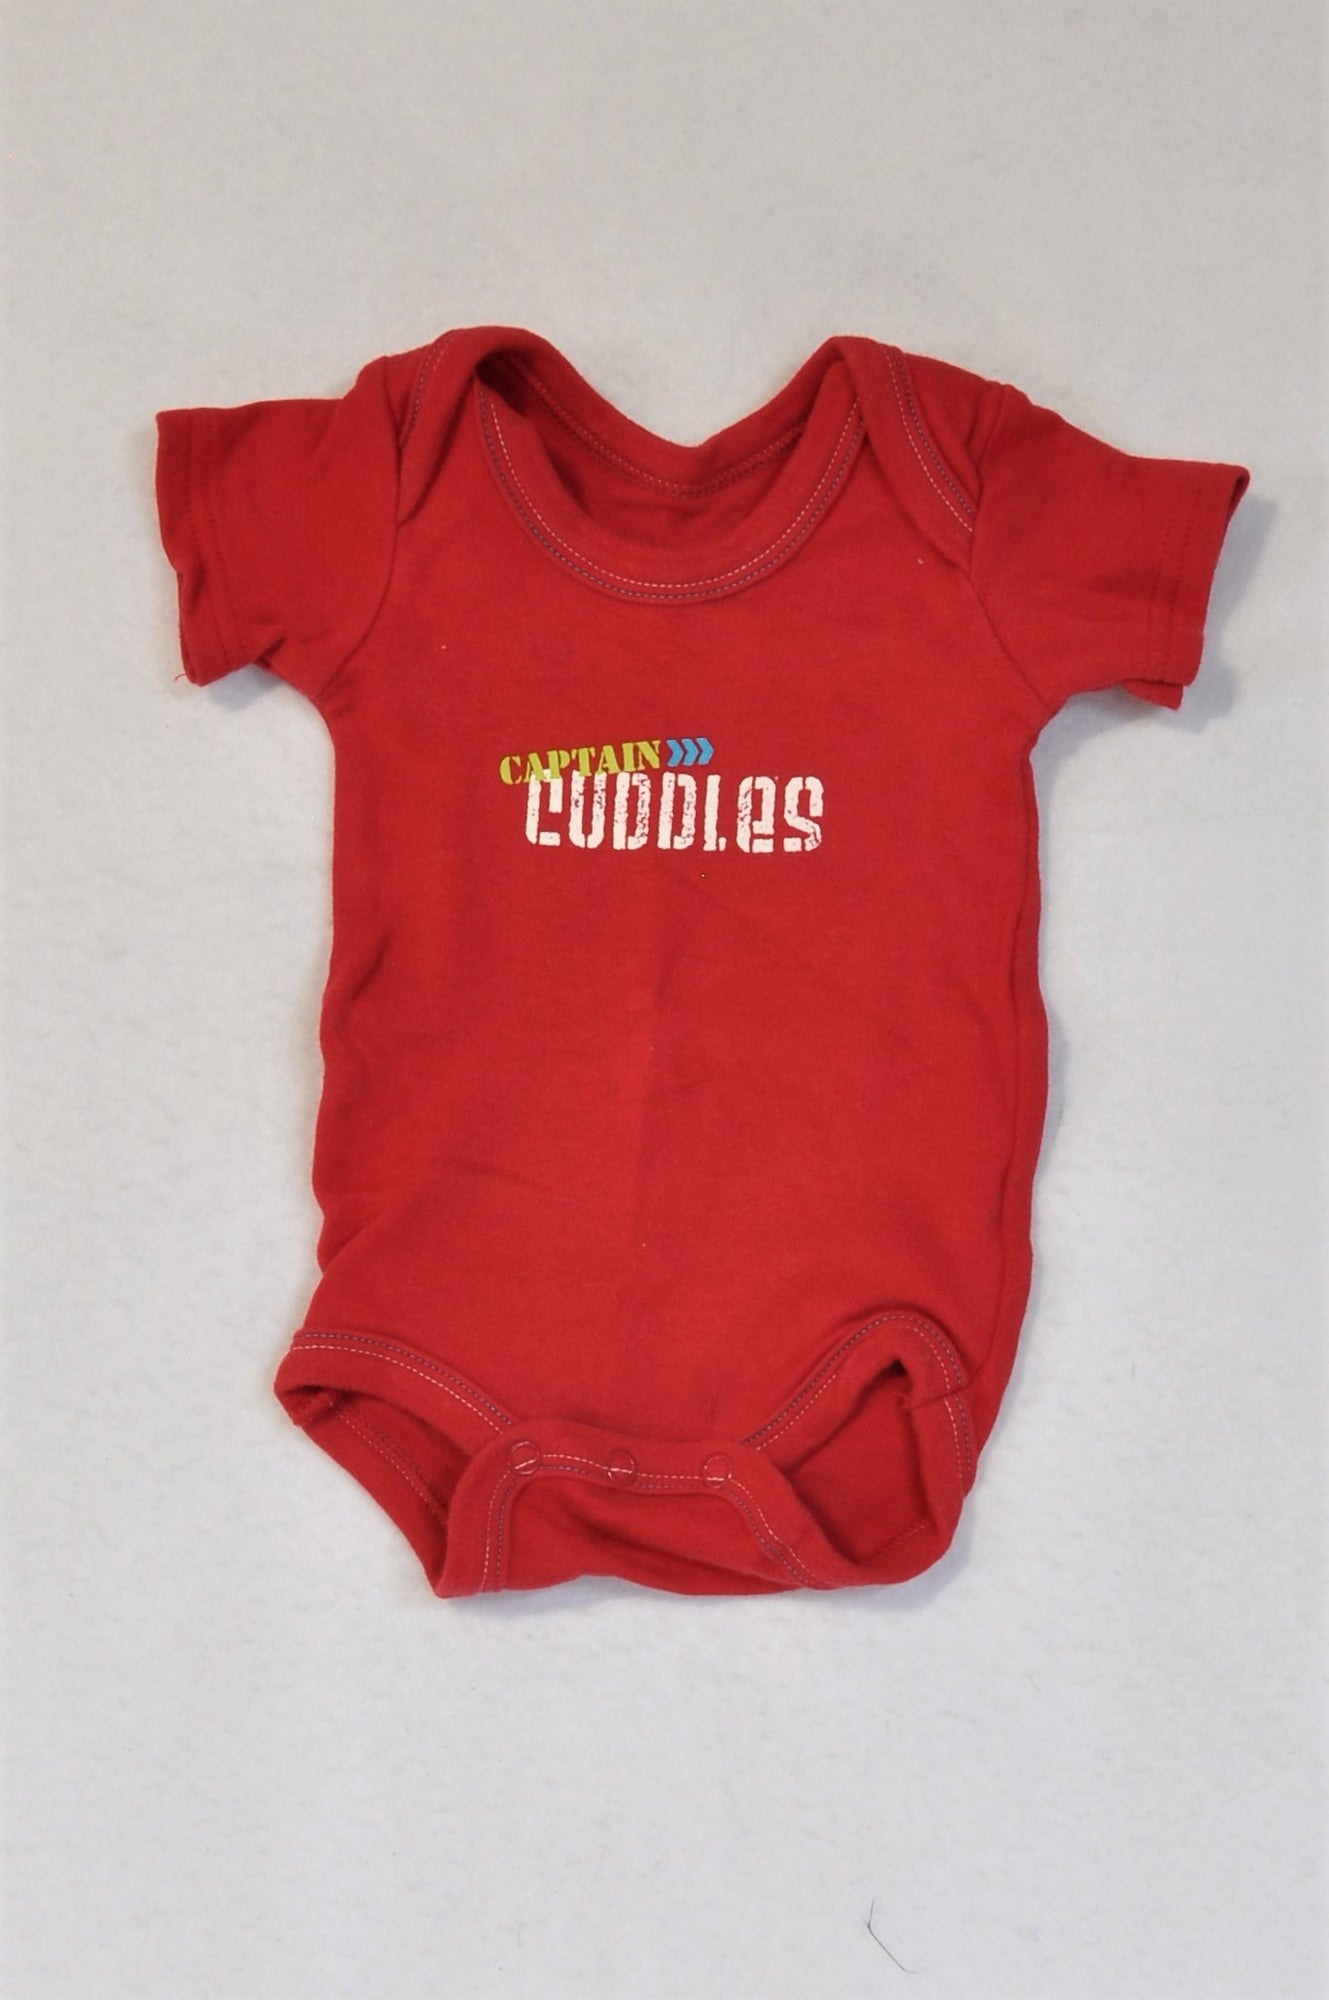 Woolworths Red & White Captain Cuddles Baby Grow Unisex N-B